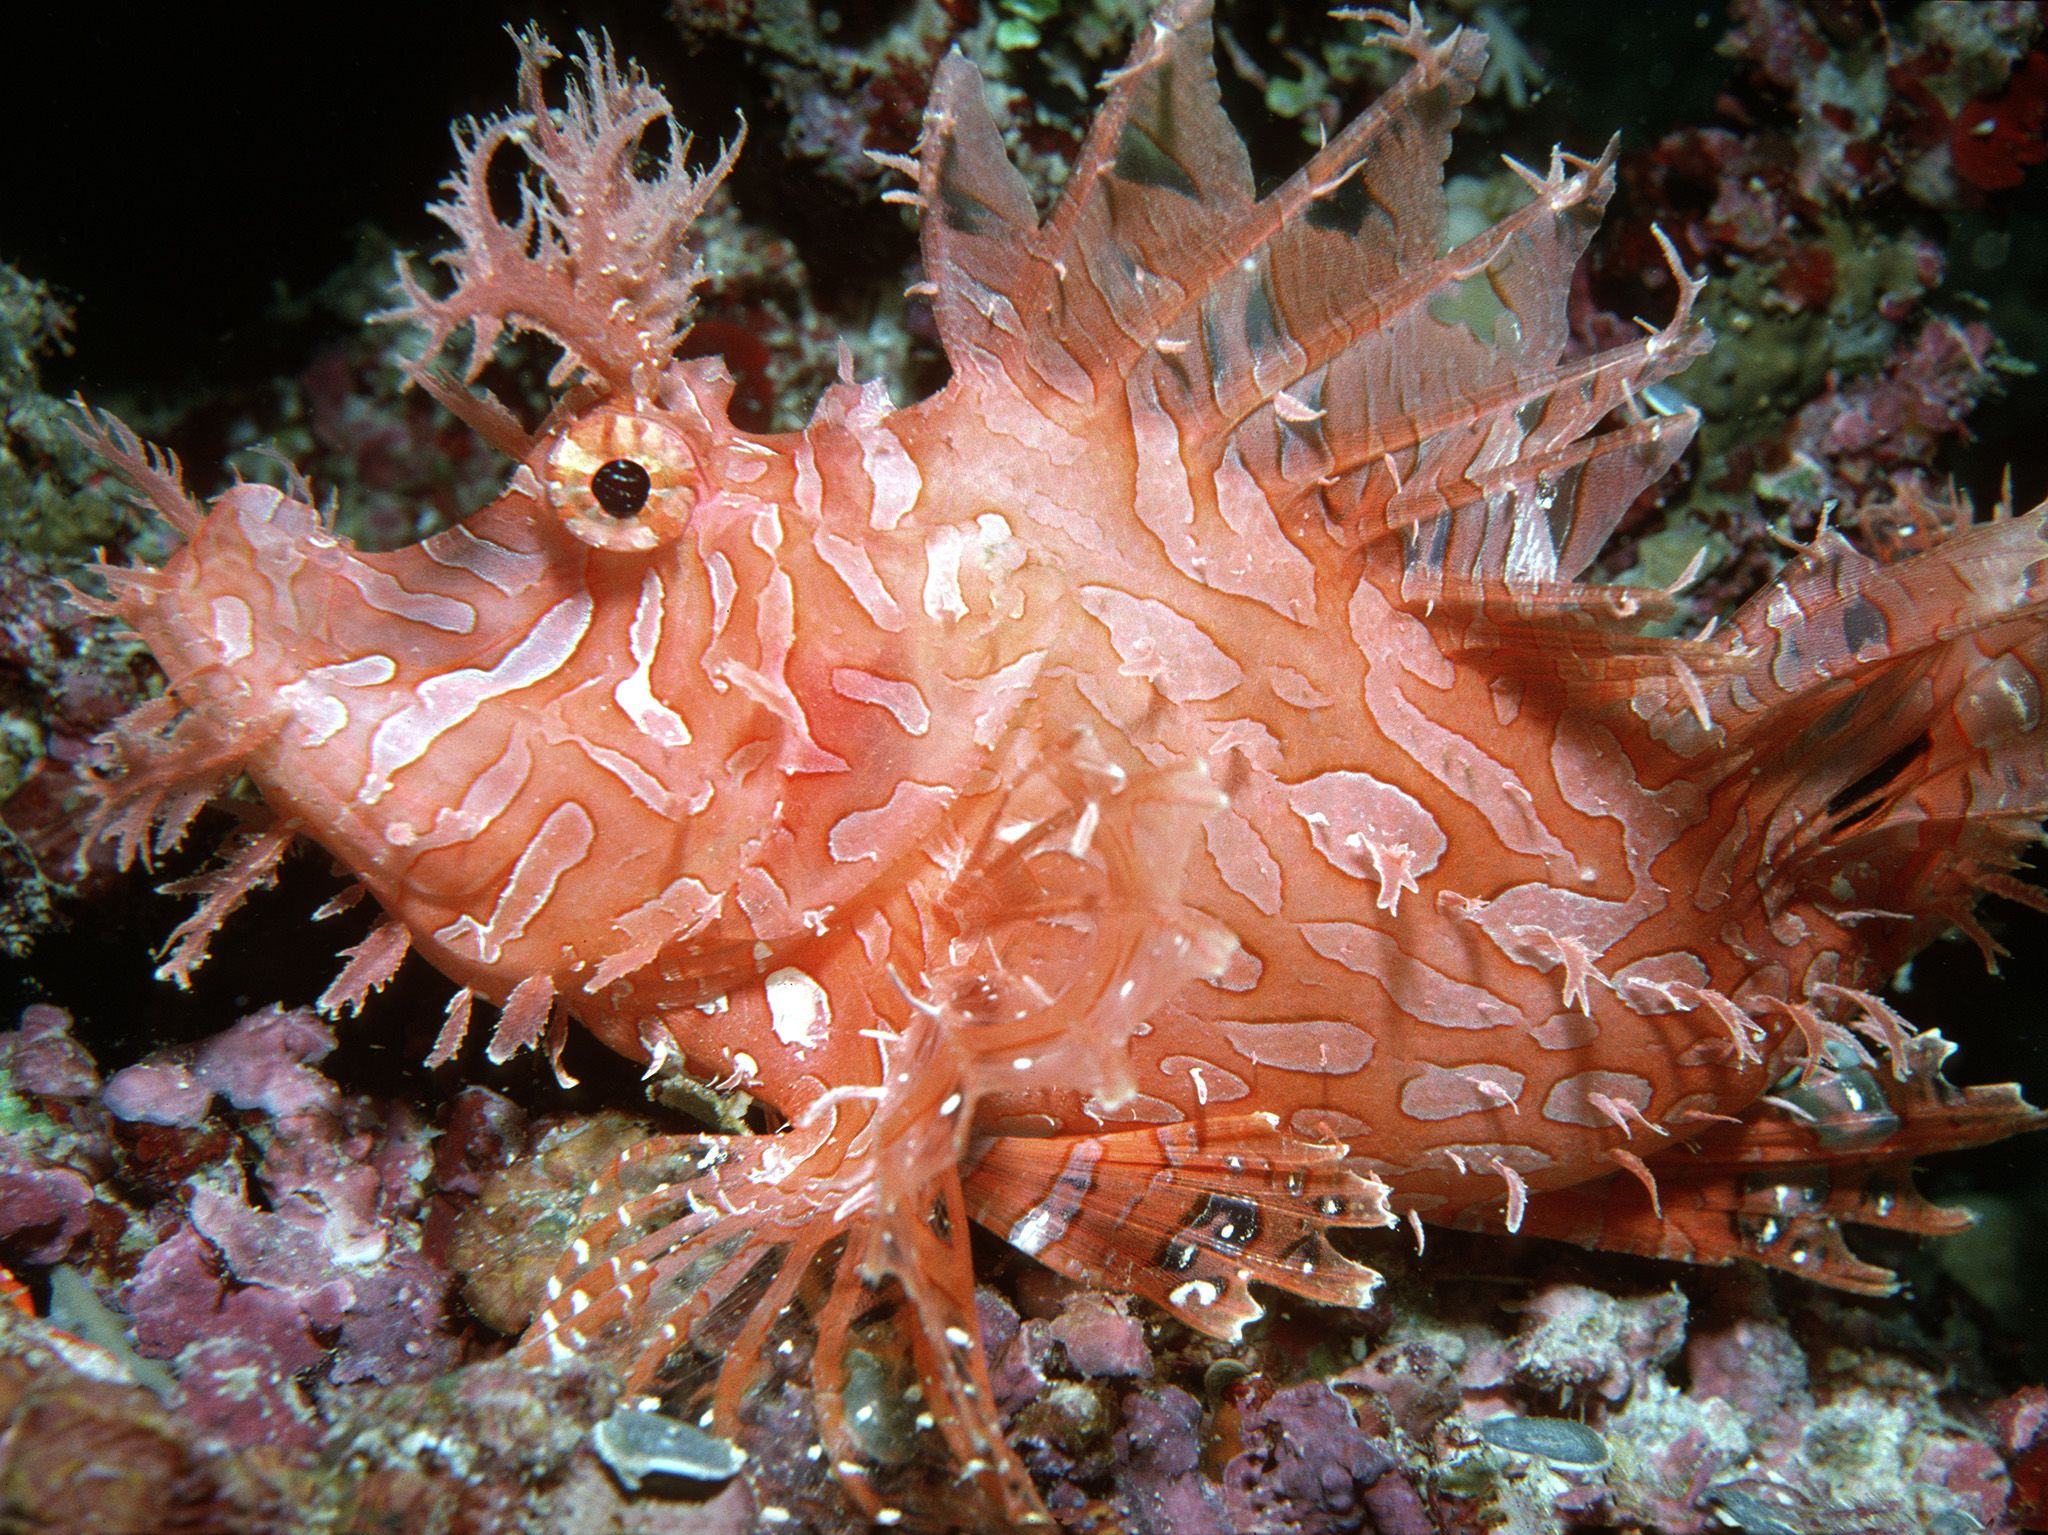 Indo-Pacific Ocean:  The Weedy scorpionfish (Rhinopias aphanes) is a peculiar looking fish with... [Photo of the day - October 2017]